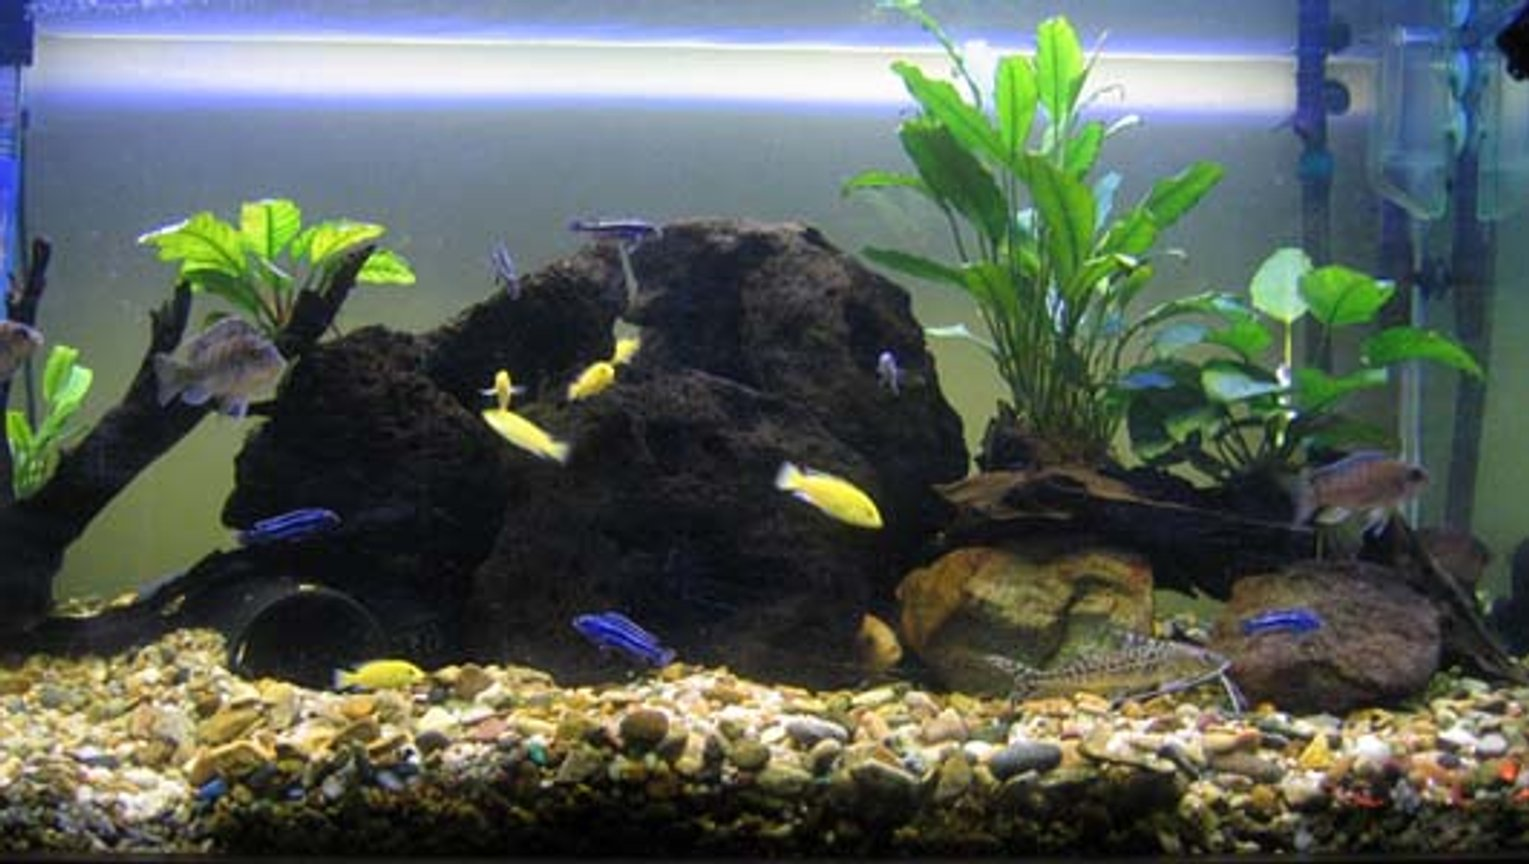 130 gallons freshwater fish tank (mostly fish and non-living decorations) - just established 4ftx2ftx2ft prime 30 canister filter with undergravel filtration with large powerhead. 2x 4ft fluro lights 3 large volcanis rocks assorted tubing 4 anubis on driftwood 2 pictus cats 5 bristlenose 6 electric yellow 7 maingano 3 electric blue 1zebra